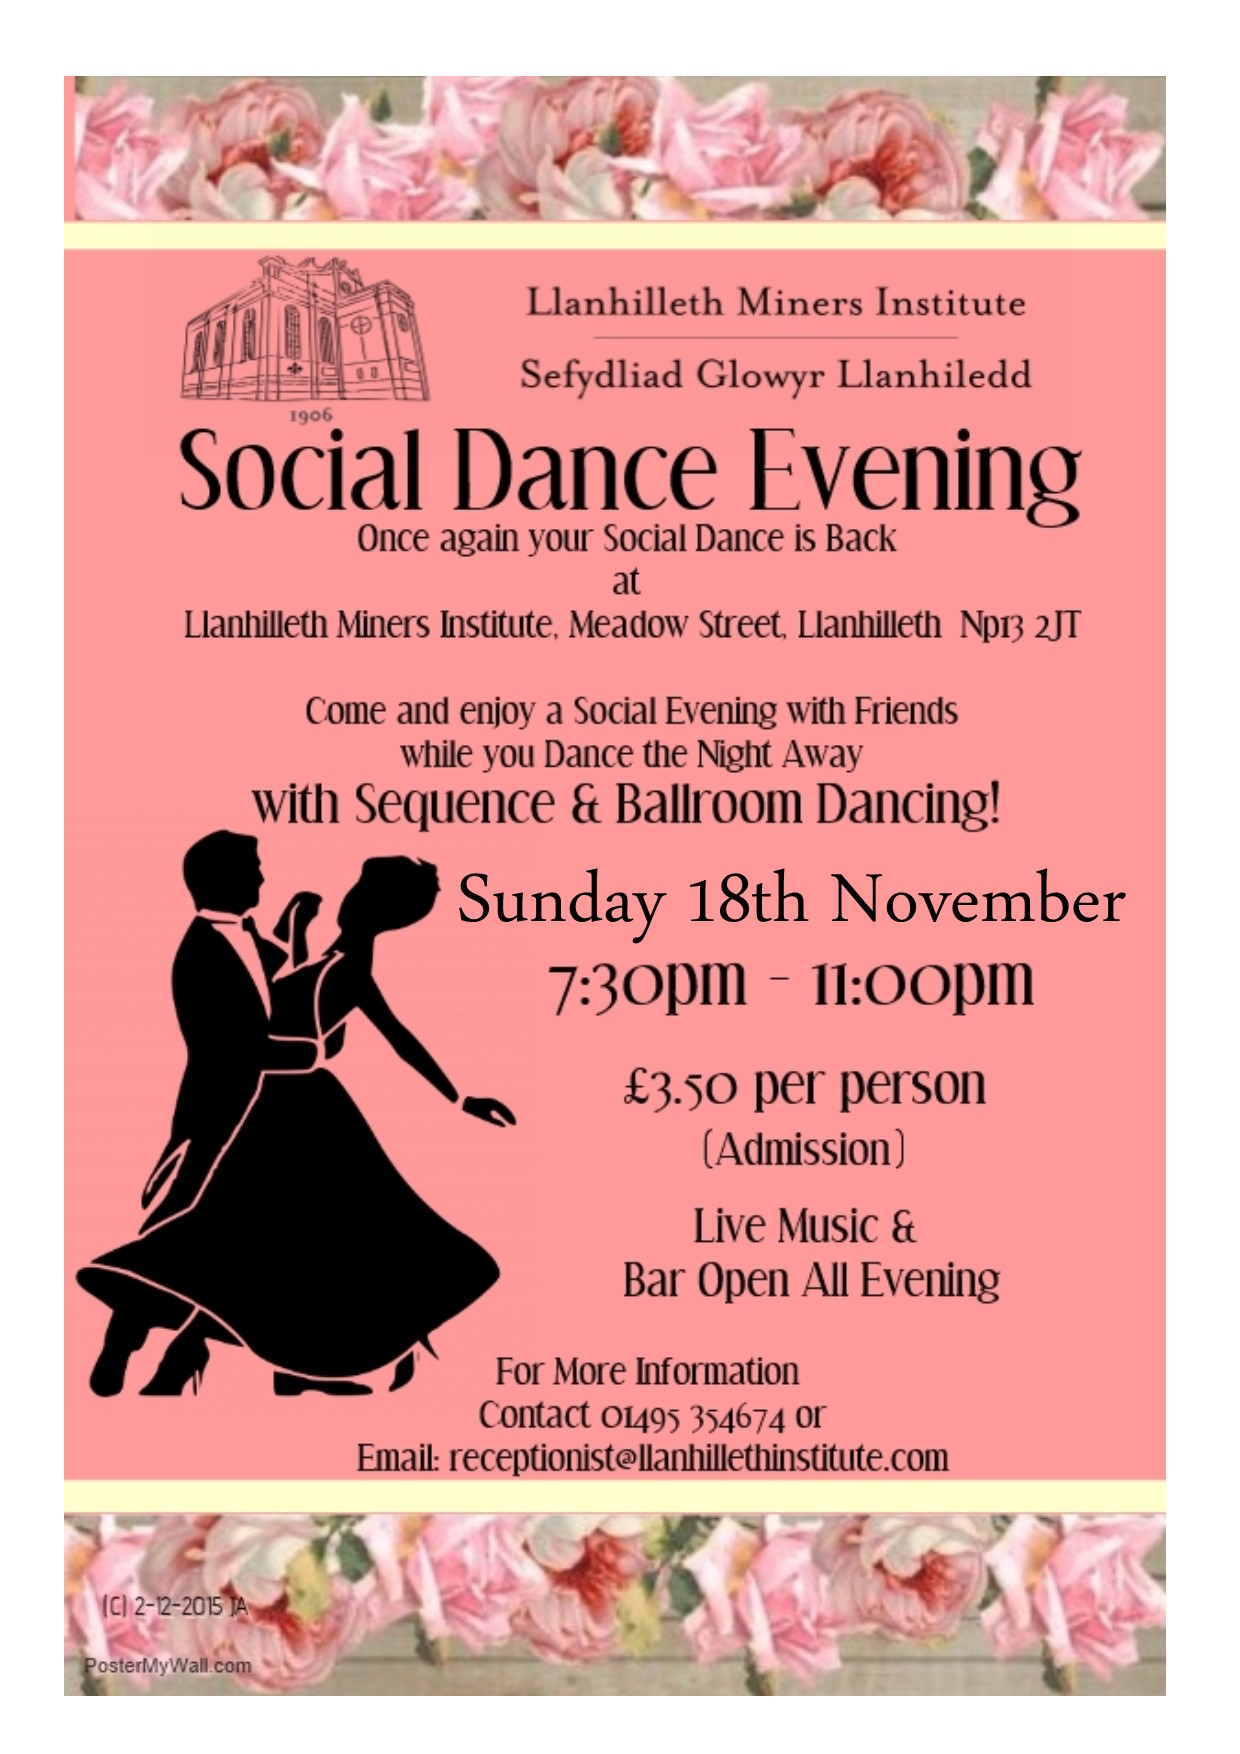 Monthly Sunday Evening Social Dance